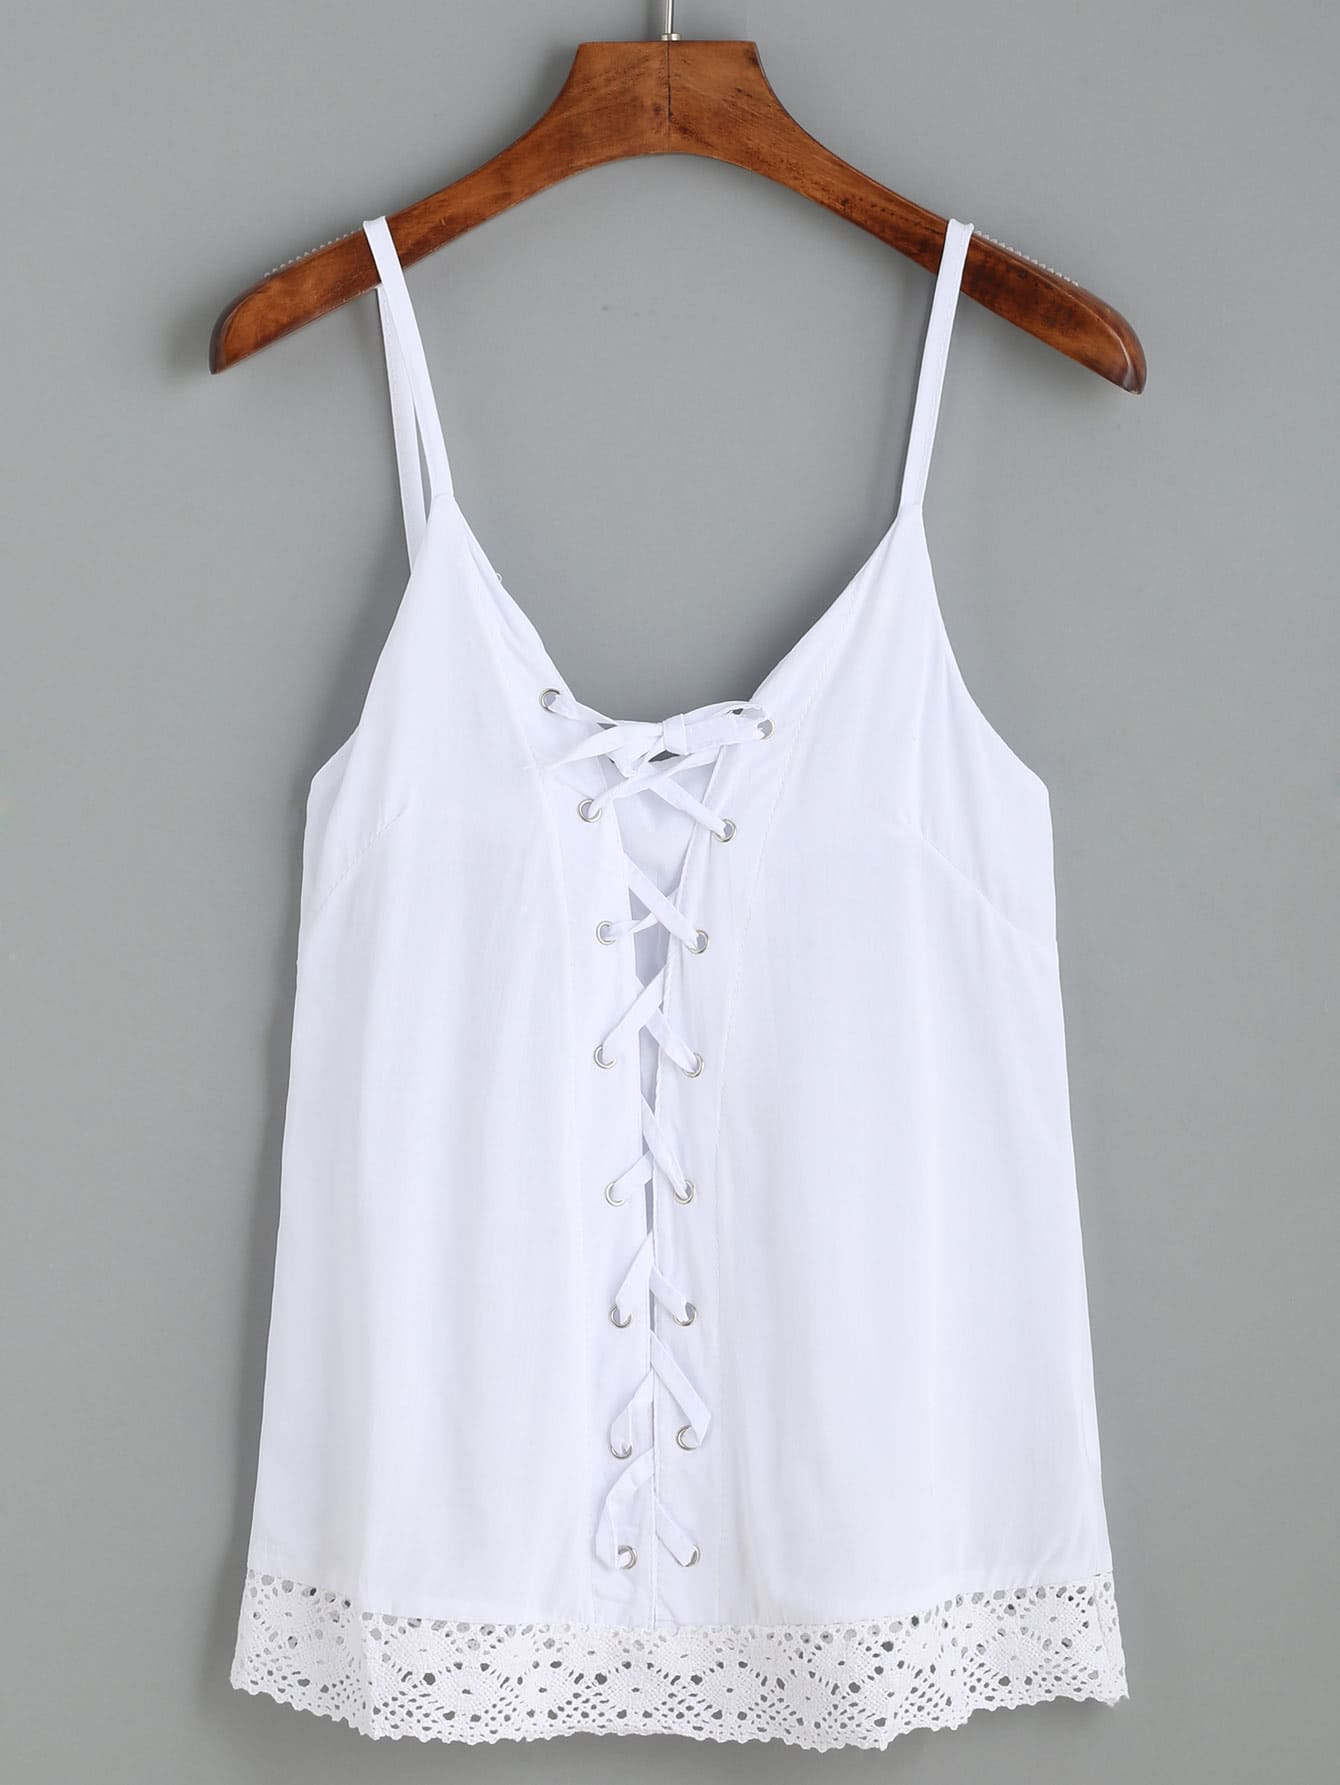 White Eyelet Lace Up Crochet Trimmed Cami Top vest160802301